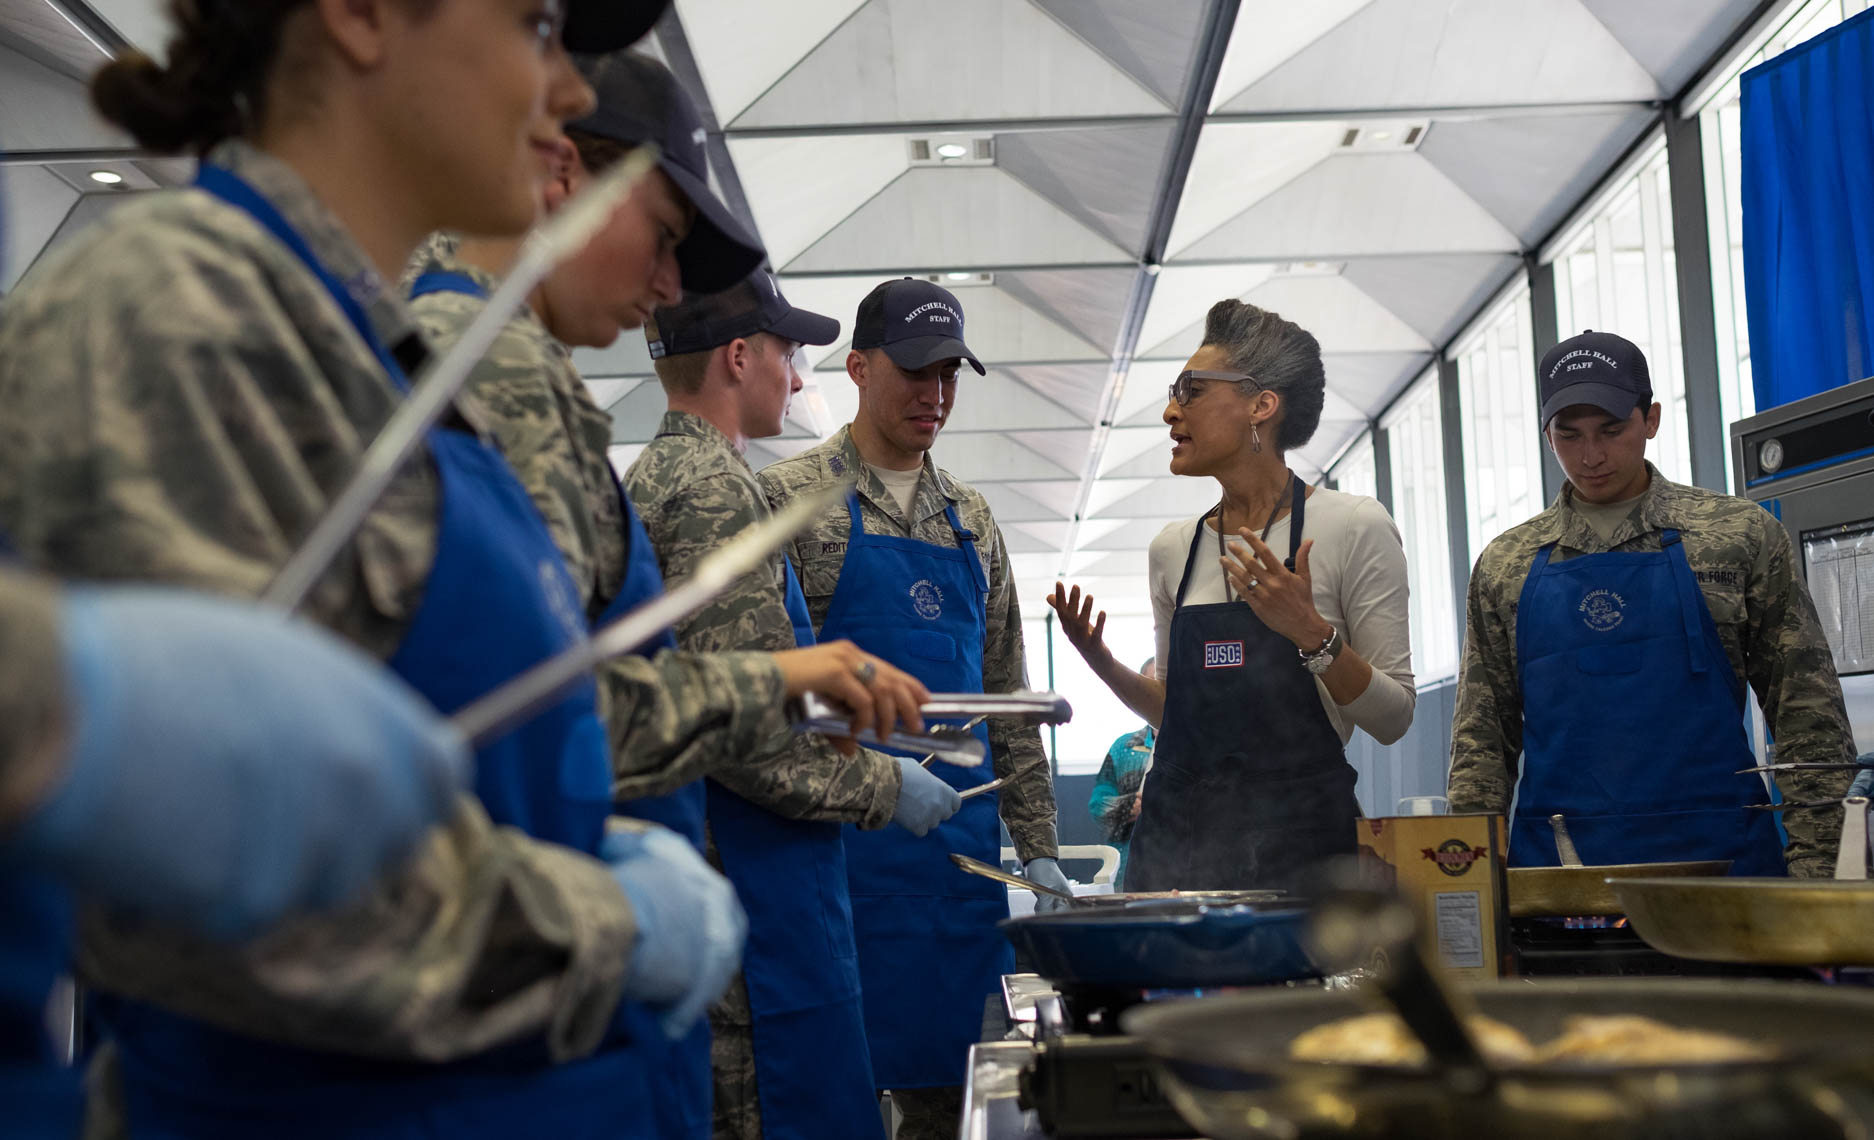 USO Chef Carla Hall teaches cooking skills to Air Force cadets